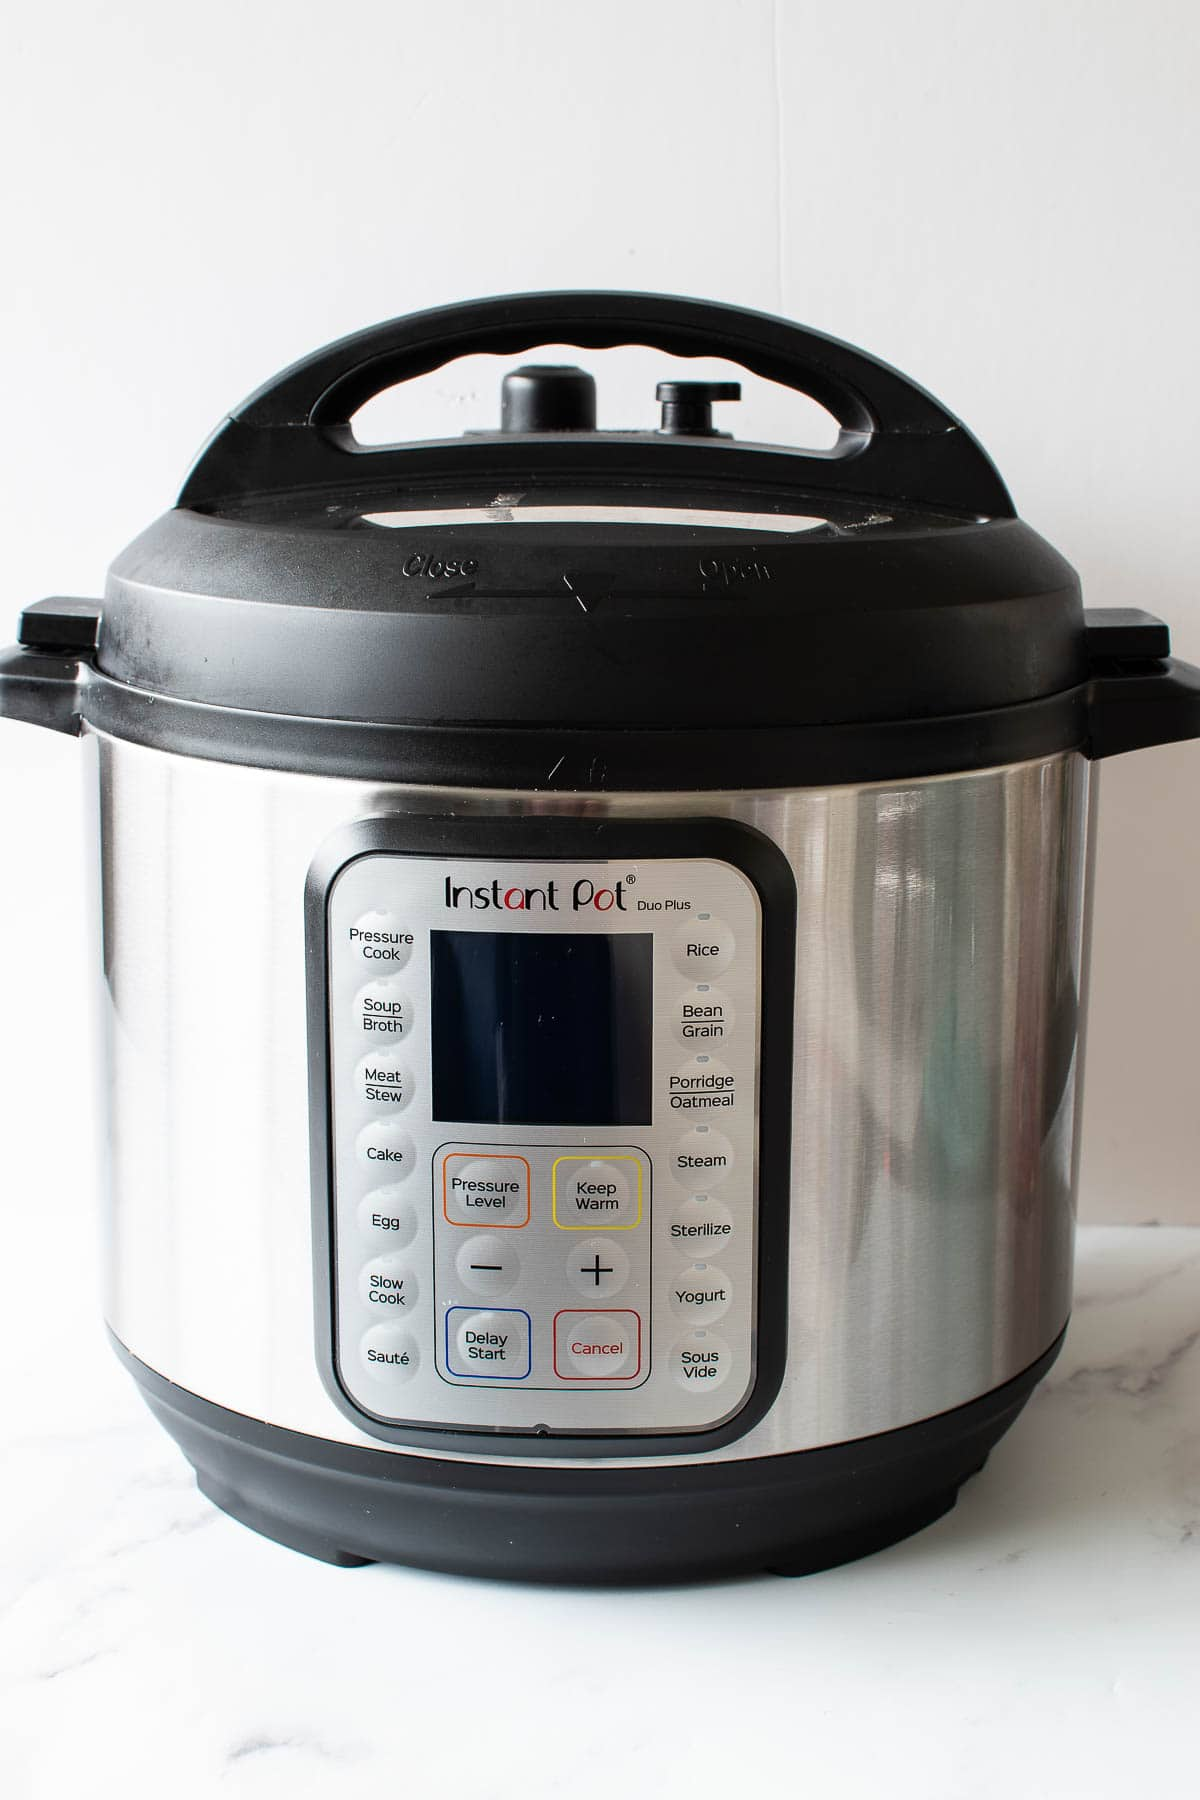 Instant Pot turned off.